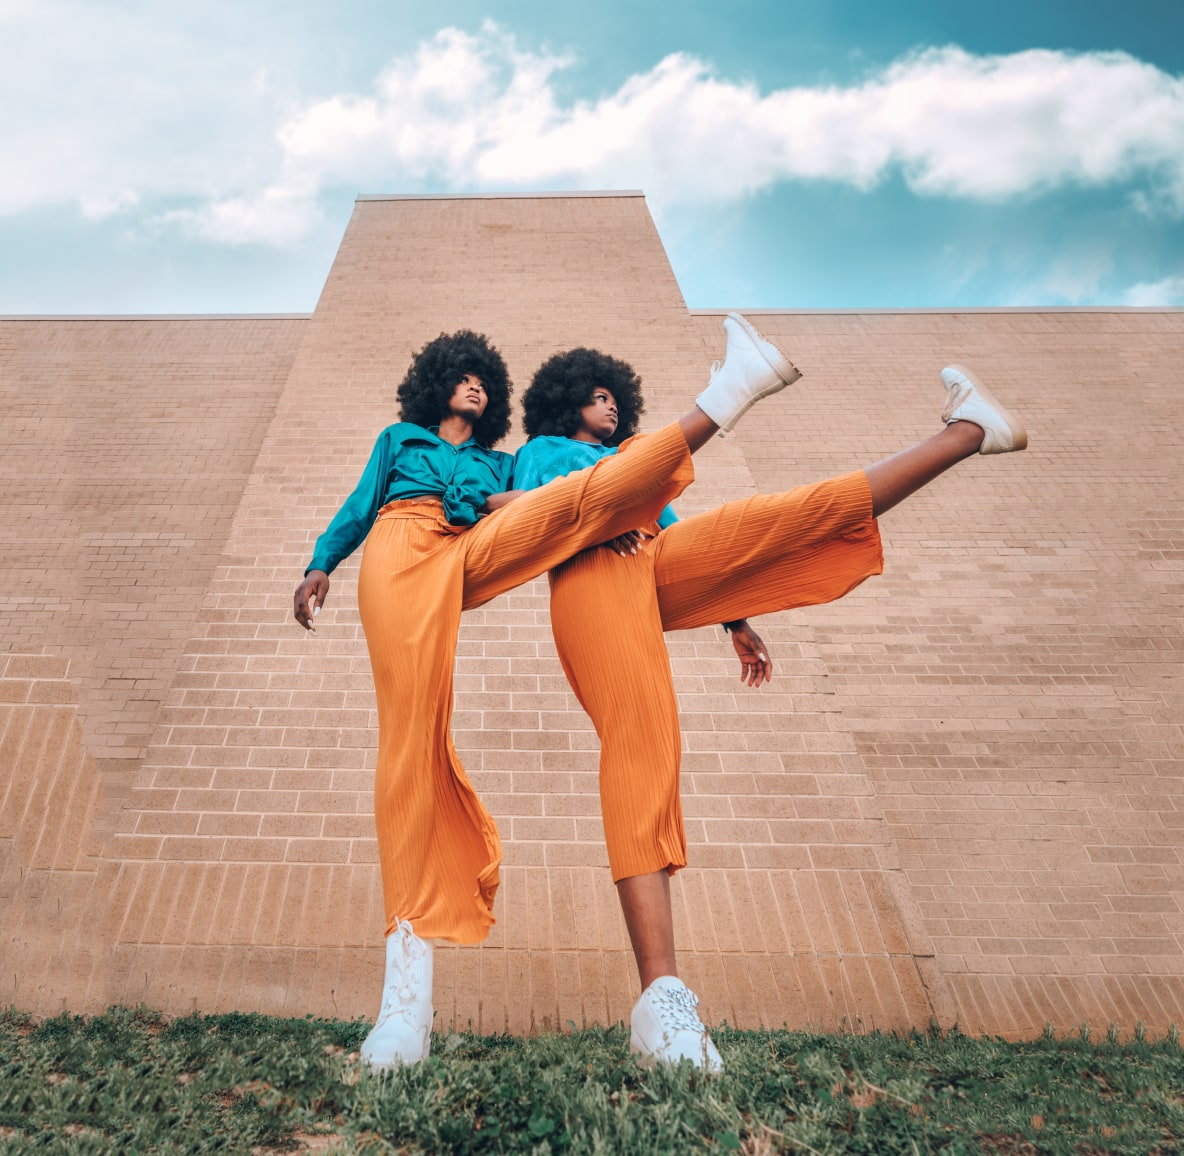 Two women kicking their legs up wearing matching long-sleeved tops in teal and flowing trousers in orange